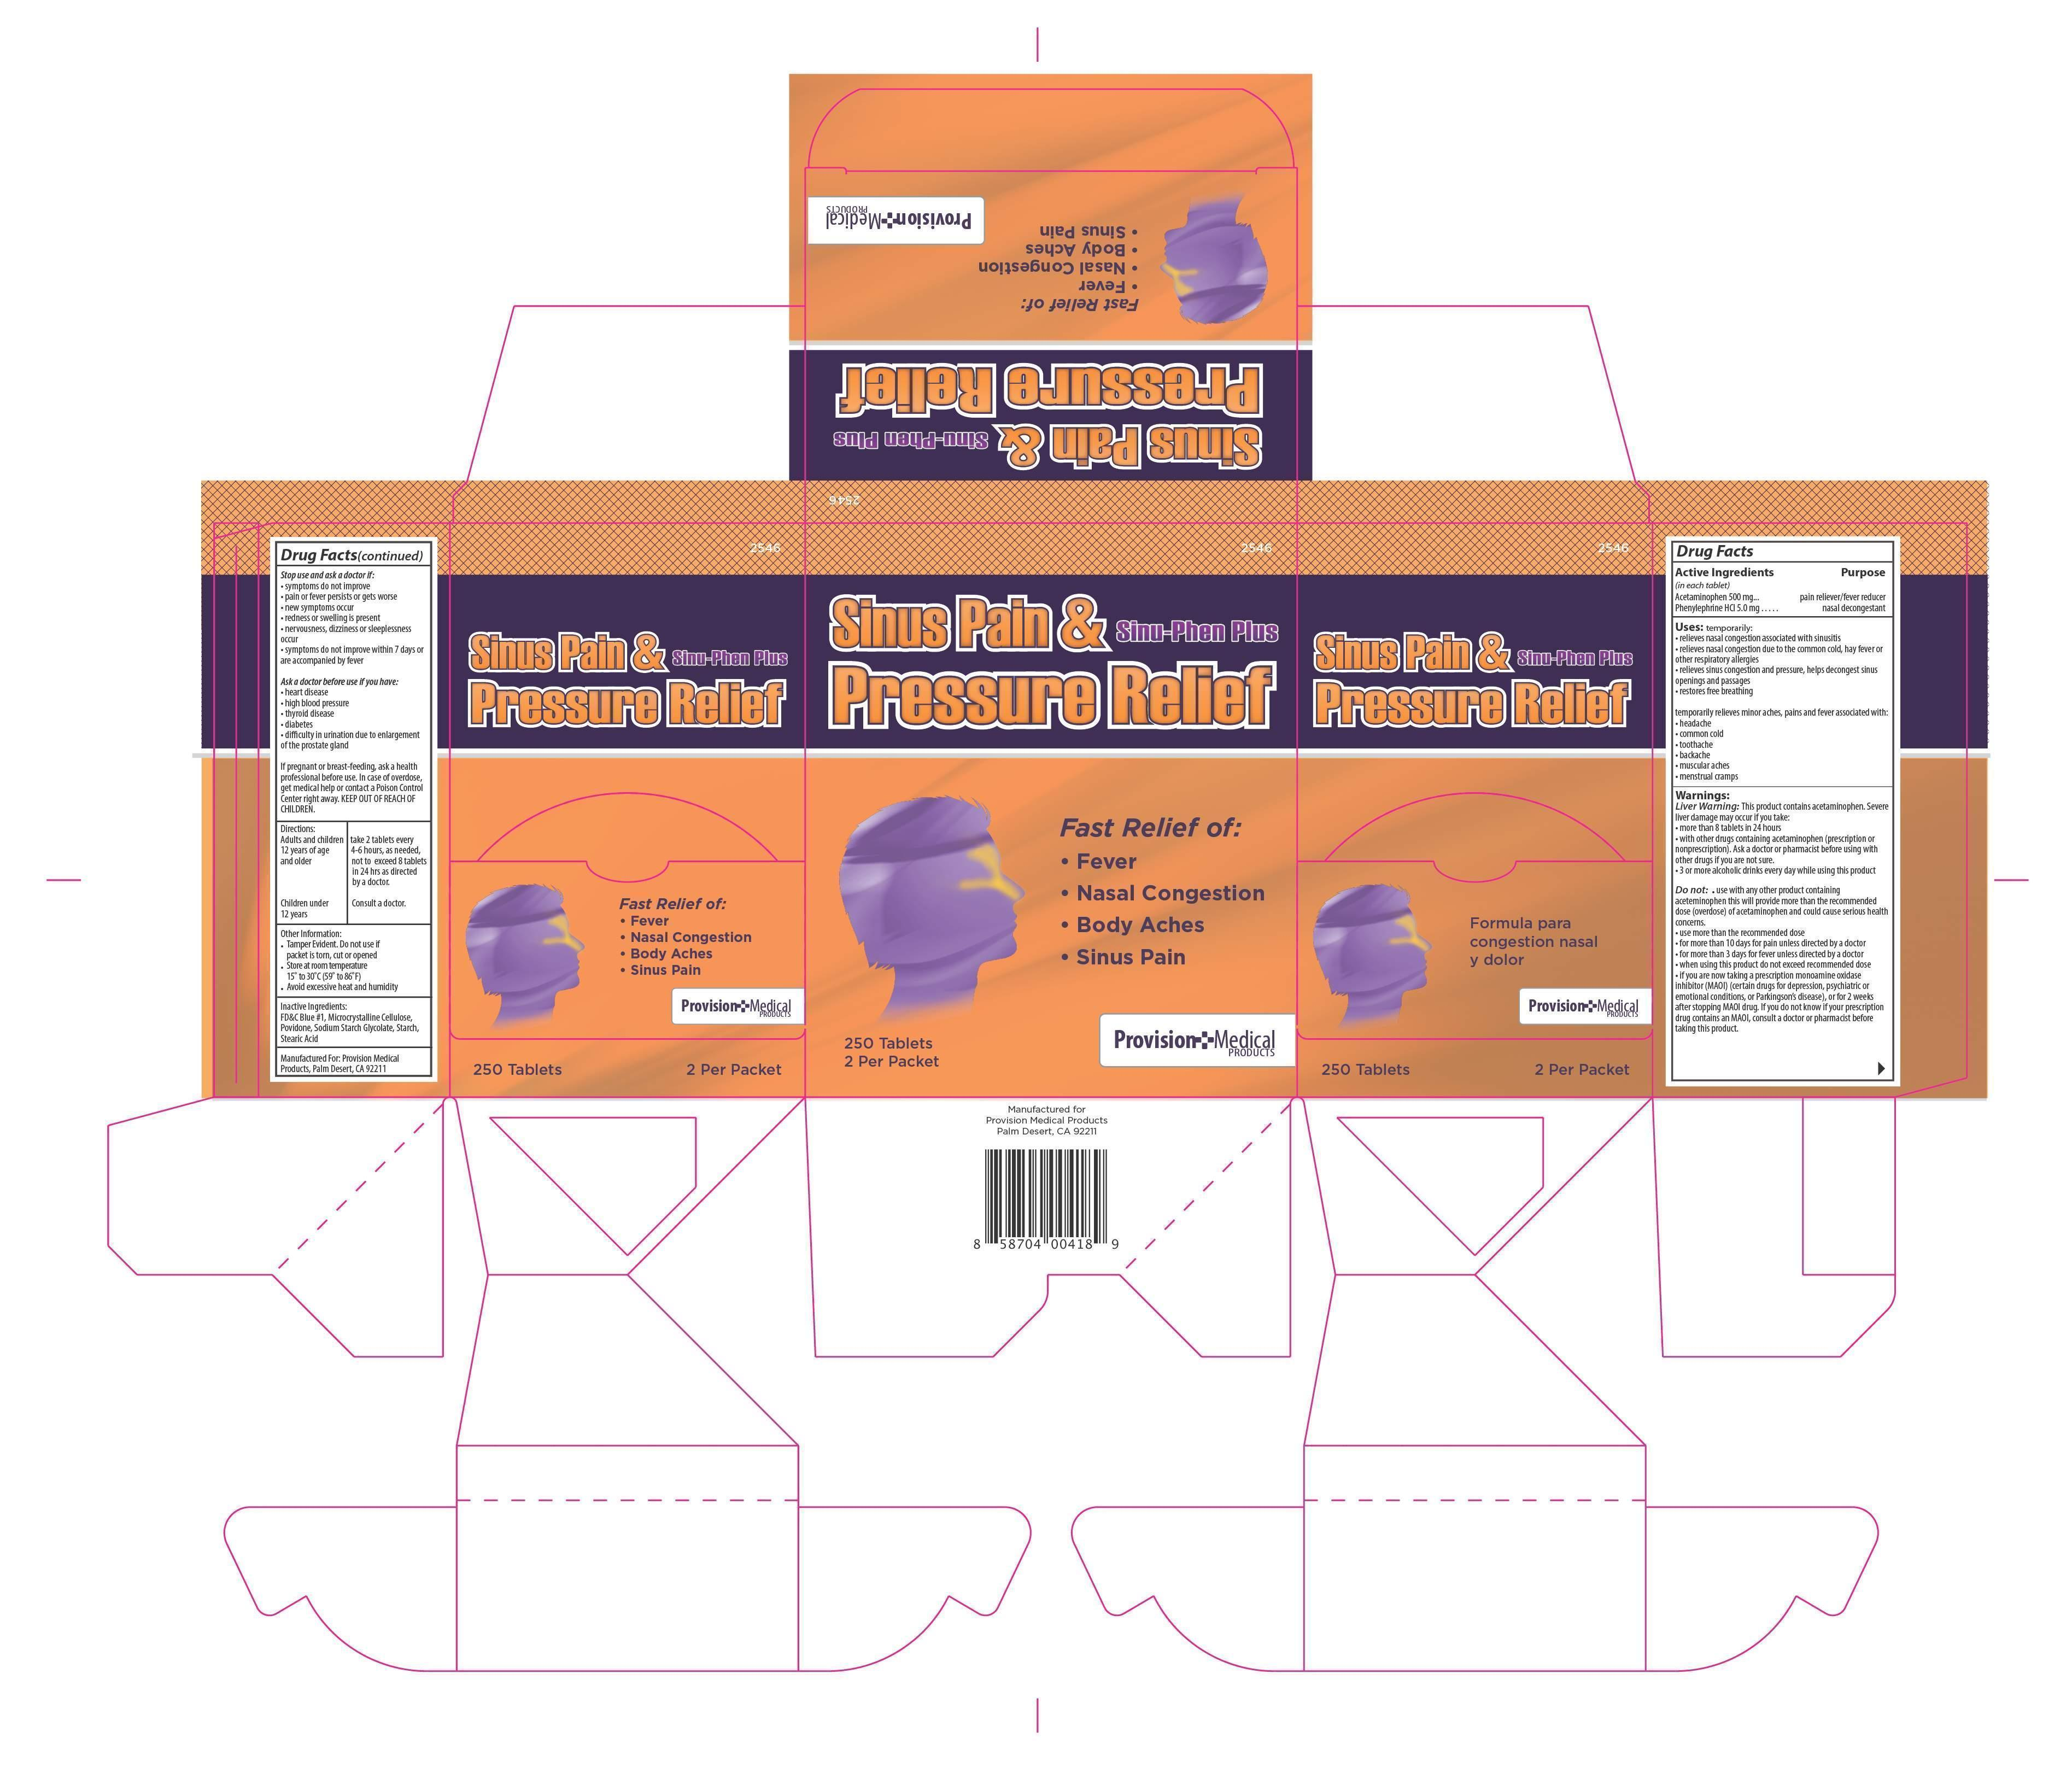 Sinu-phen Plus (Phenylephrine Hcl, Acetaminophen ) Tablet [Provision Medical Products]